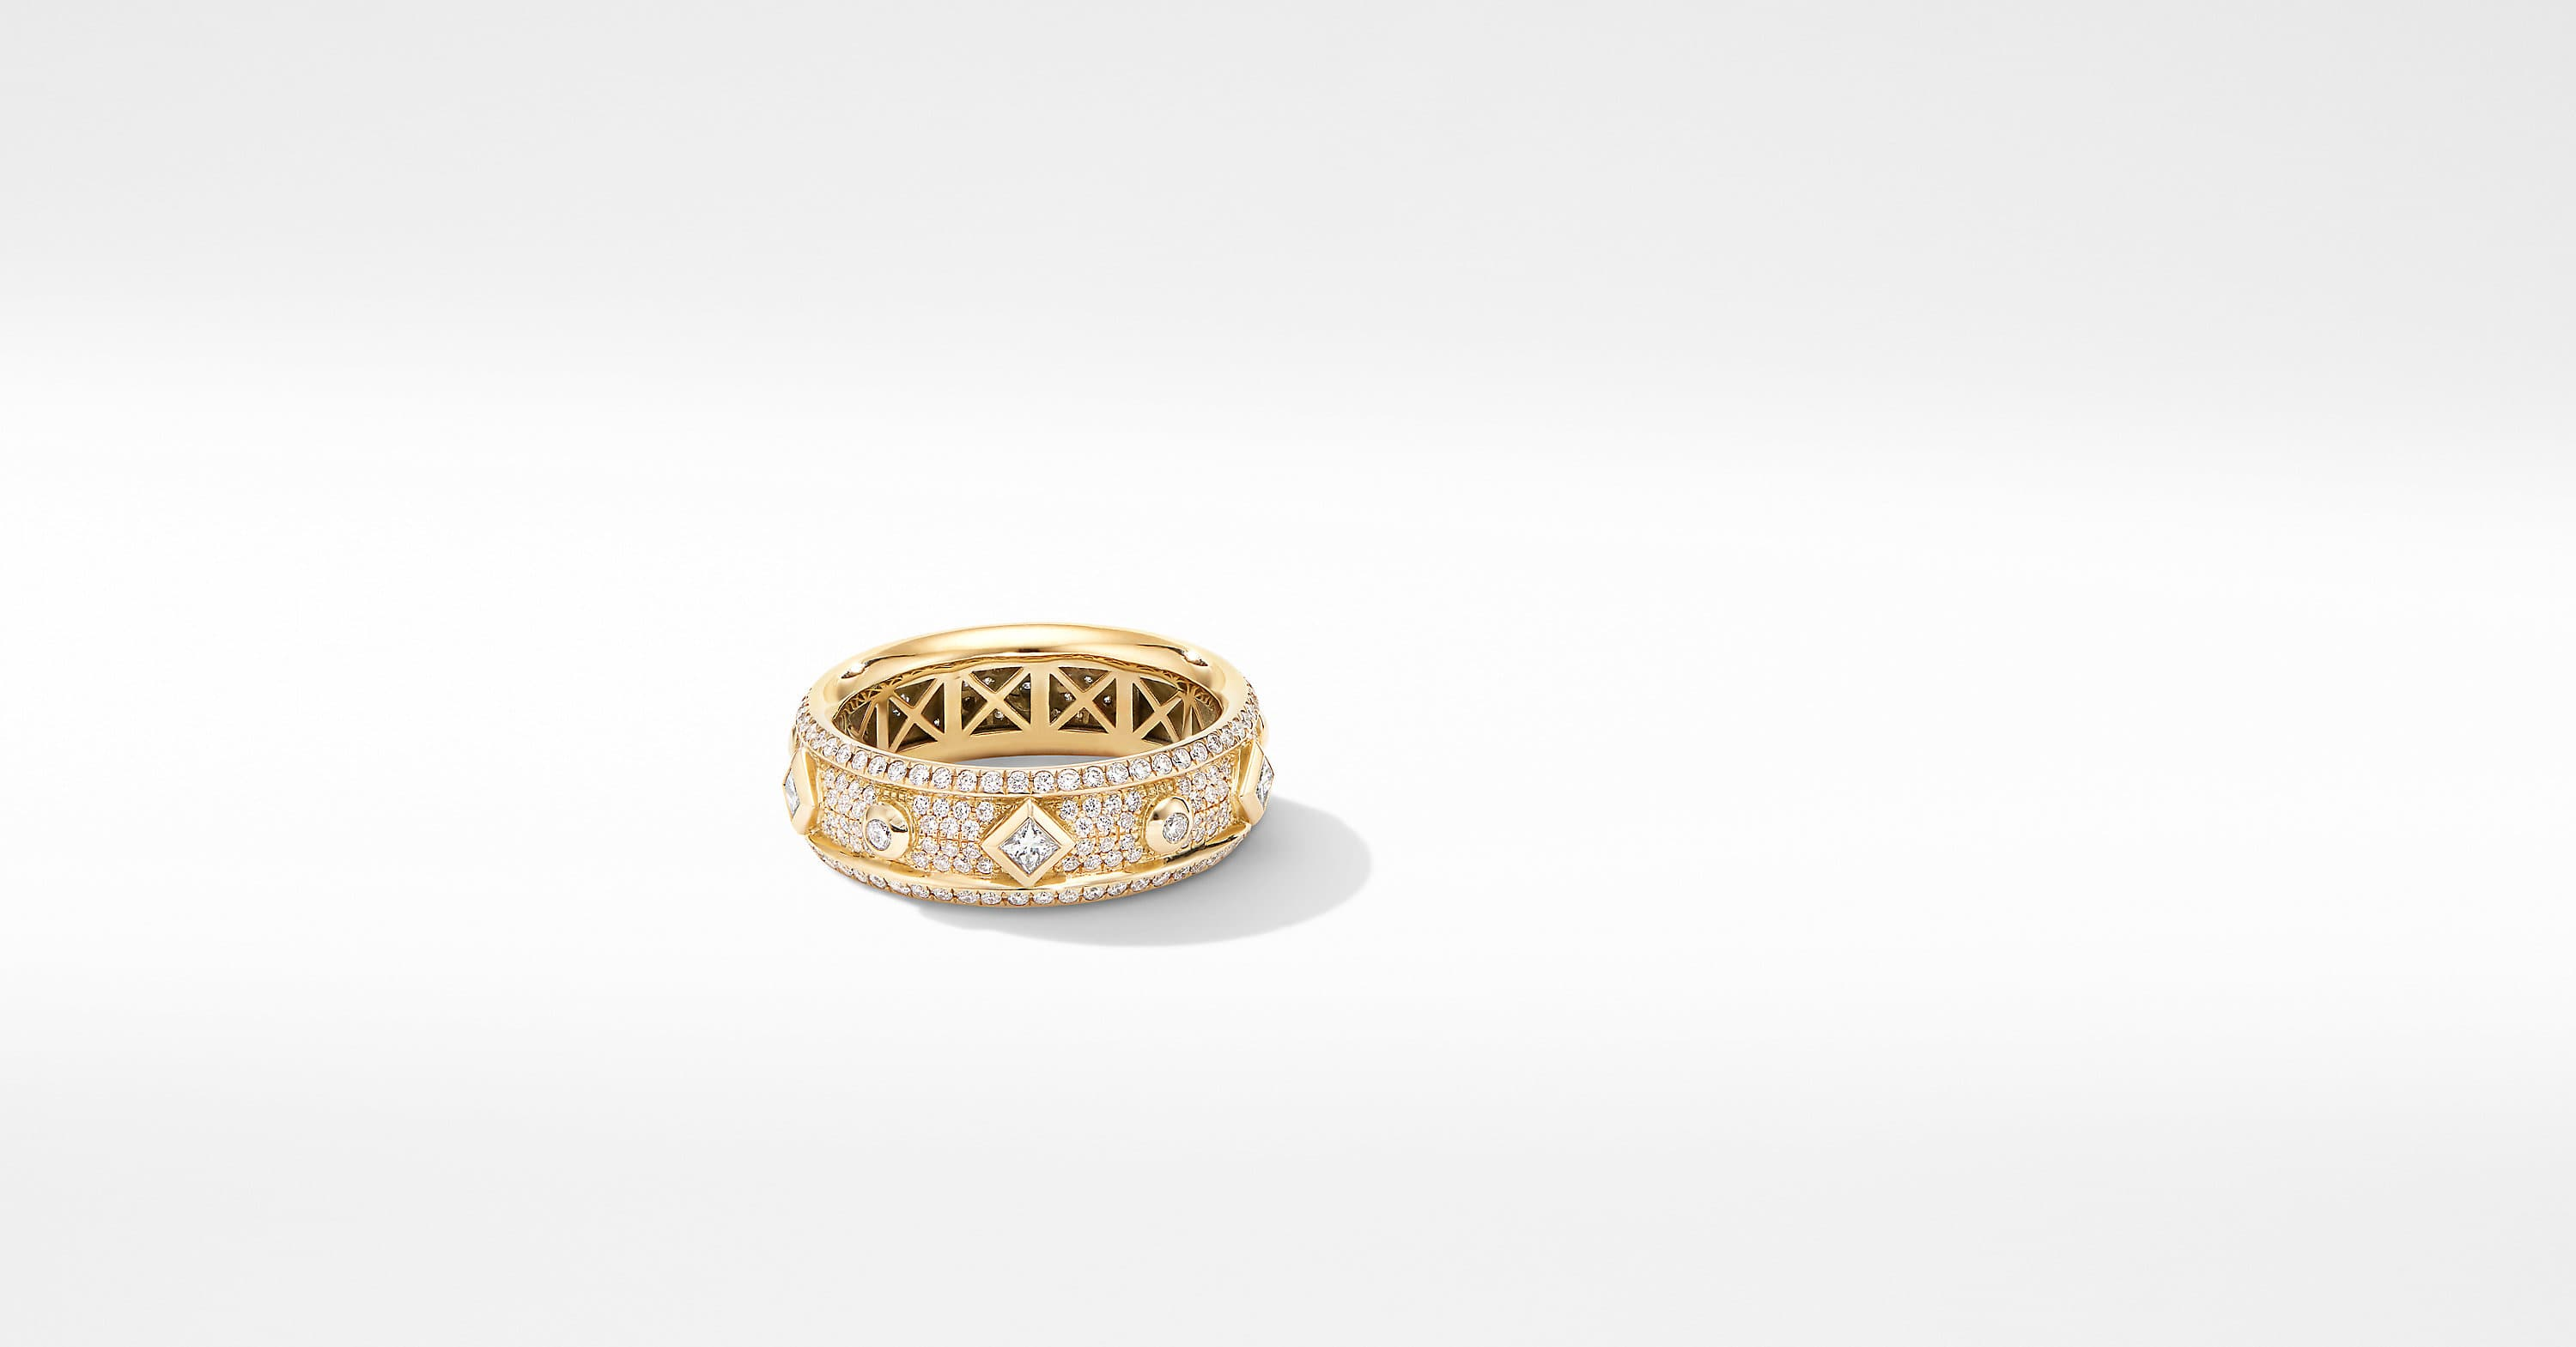 Modern Renaissance Narrow Ring in 18K Yellow Gold with Diamonds